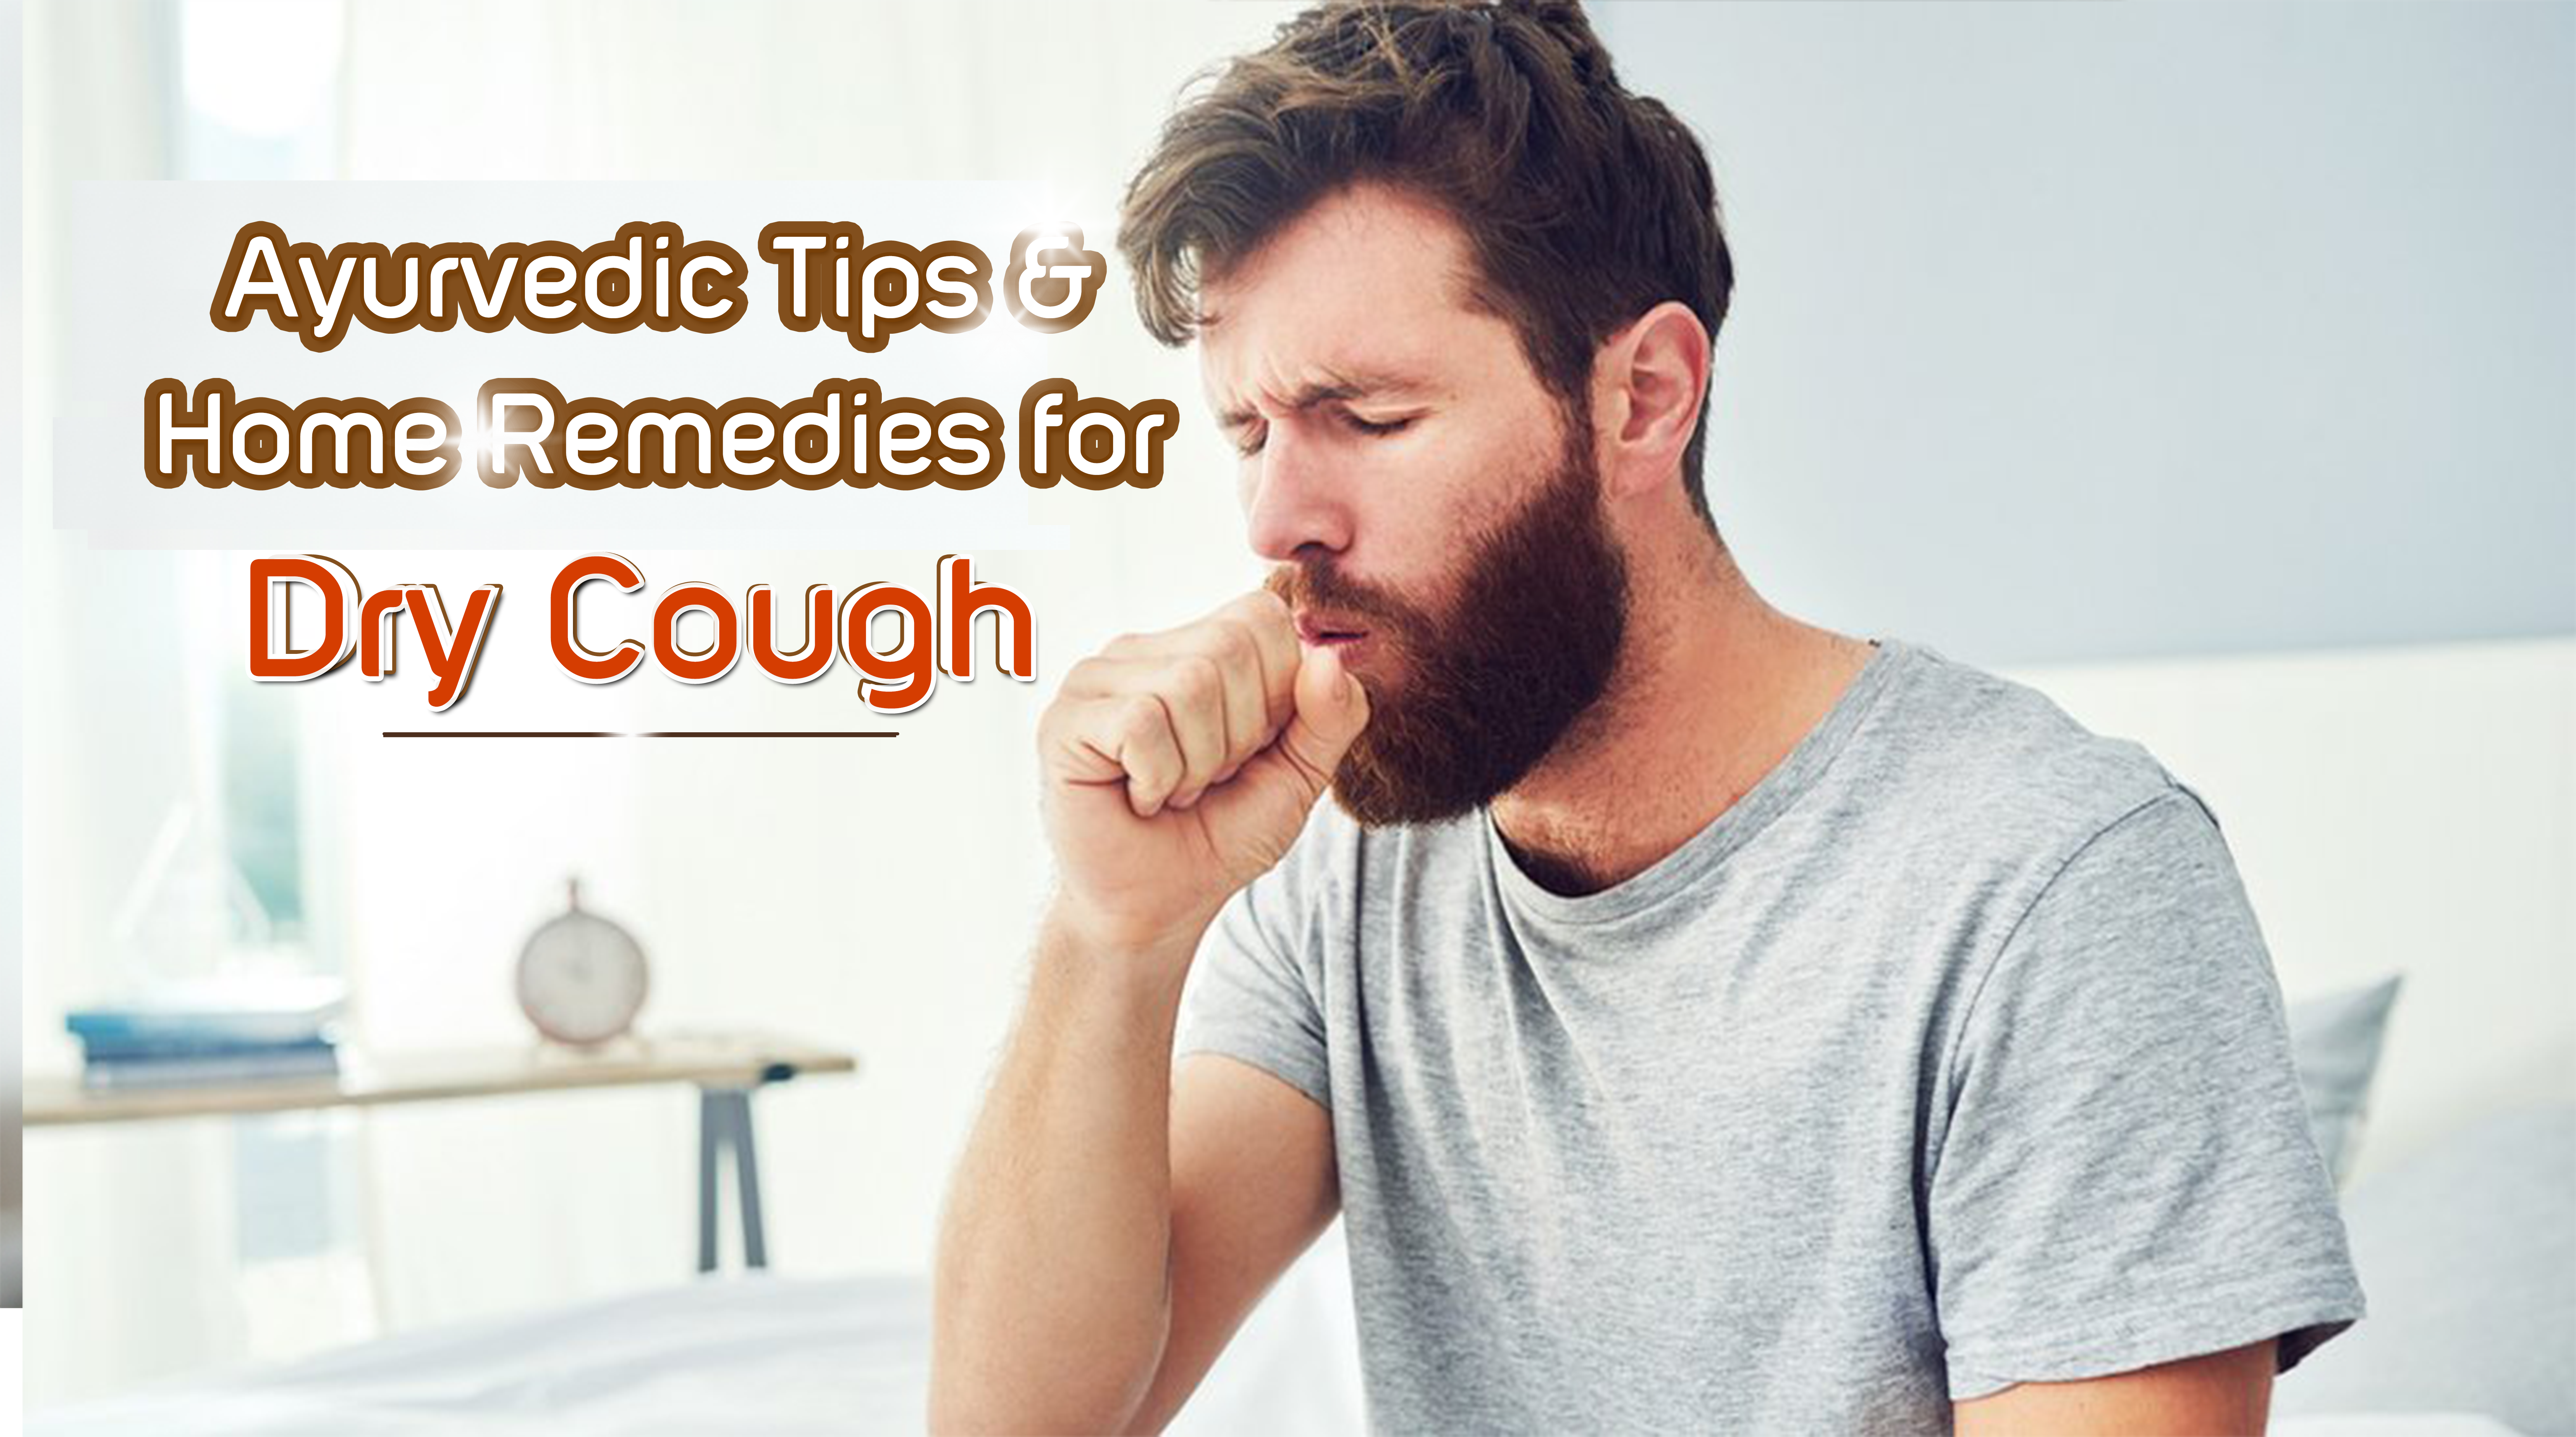 Gain Relief from Dry Cough with these Ayurvedic Tips